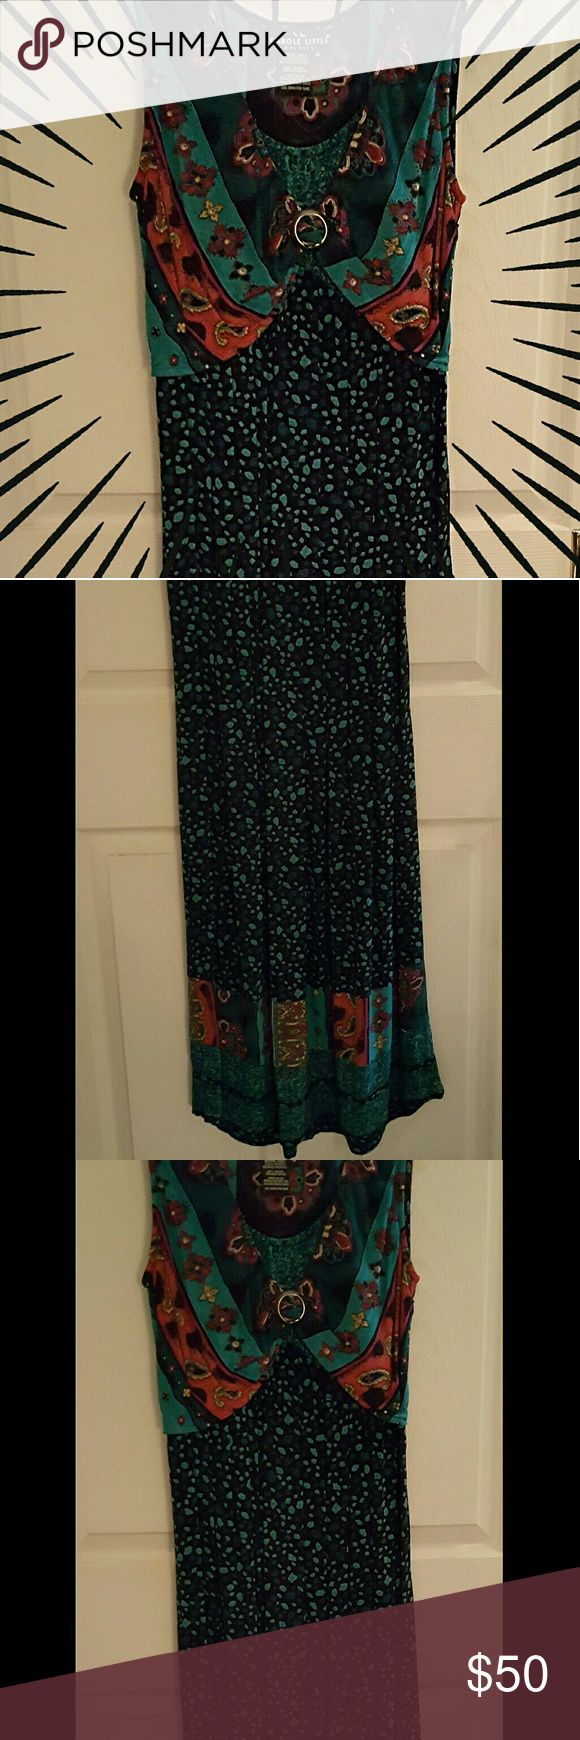 COLORFUL💖💚💙💜 BOHO MAXI DRESS💕💕 💖💚💙Festive & Fun, Flirty & Feminine & Bursting w/ Color! This dress likes to PARTY! Comfortable w/ flats, gladiator sandals or simply fabulous w/ strappies! It has a finished hem that shows the quality of work.?? It's time for YOU to woo her out of my closet. EUC. 💙💚💖 Carole Little Dresses Maxi